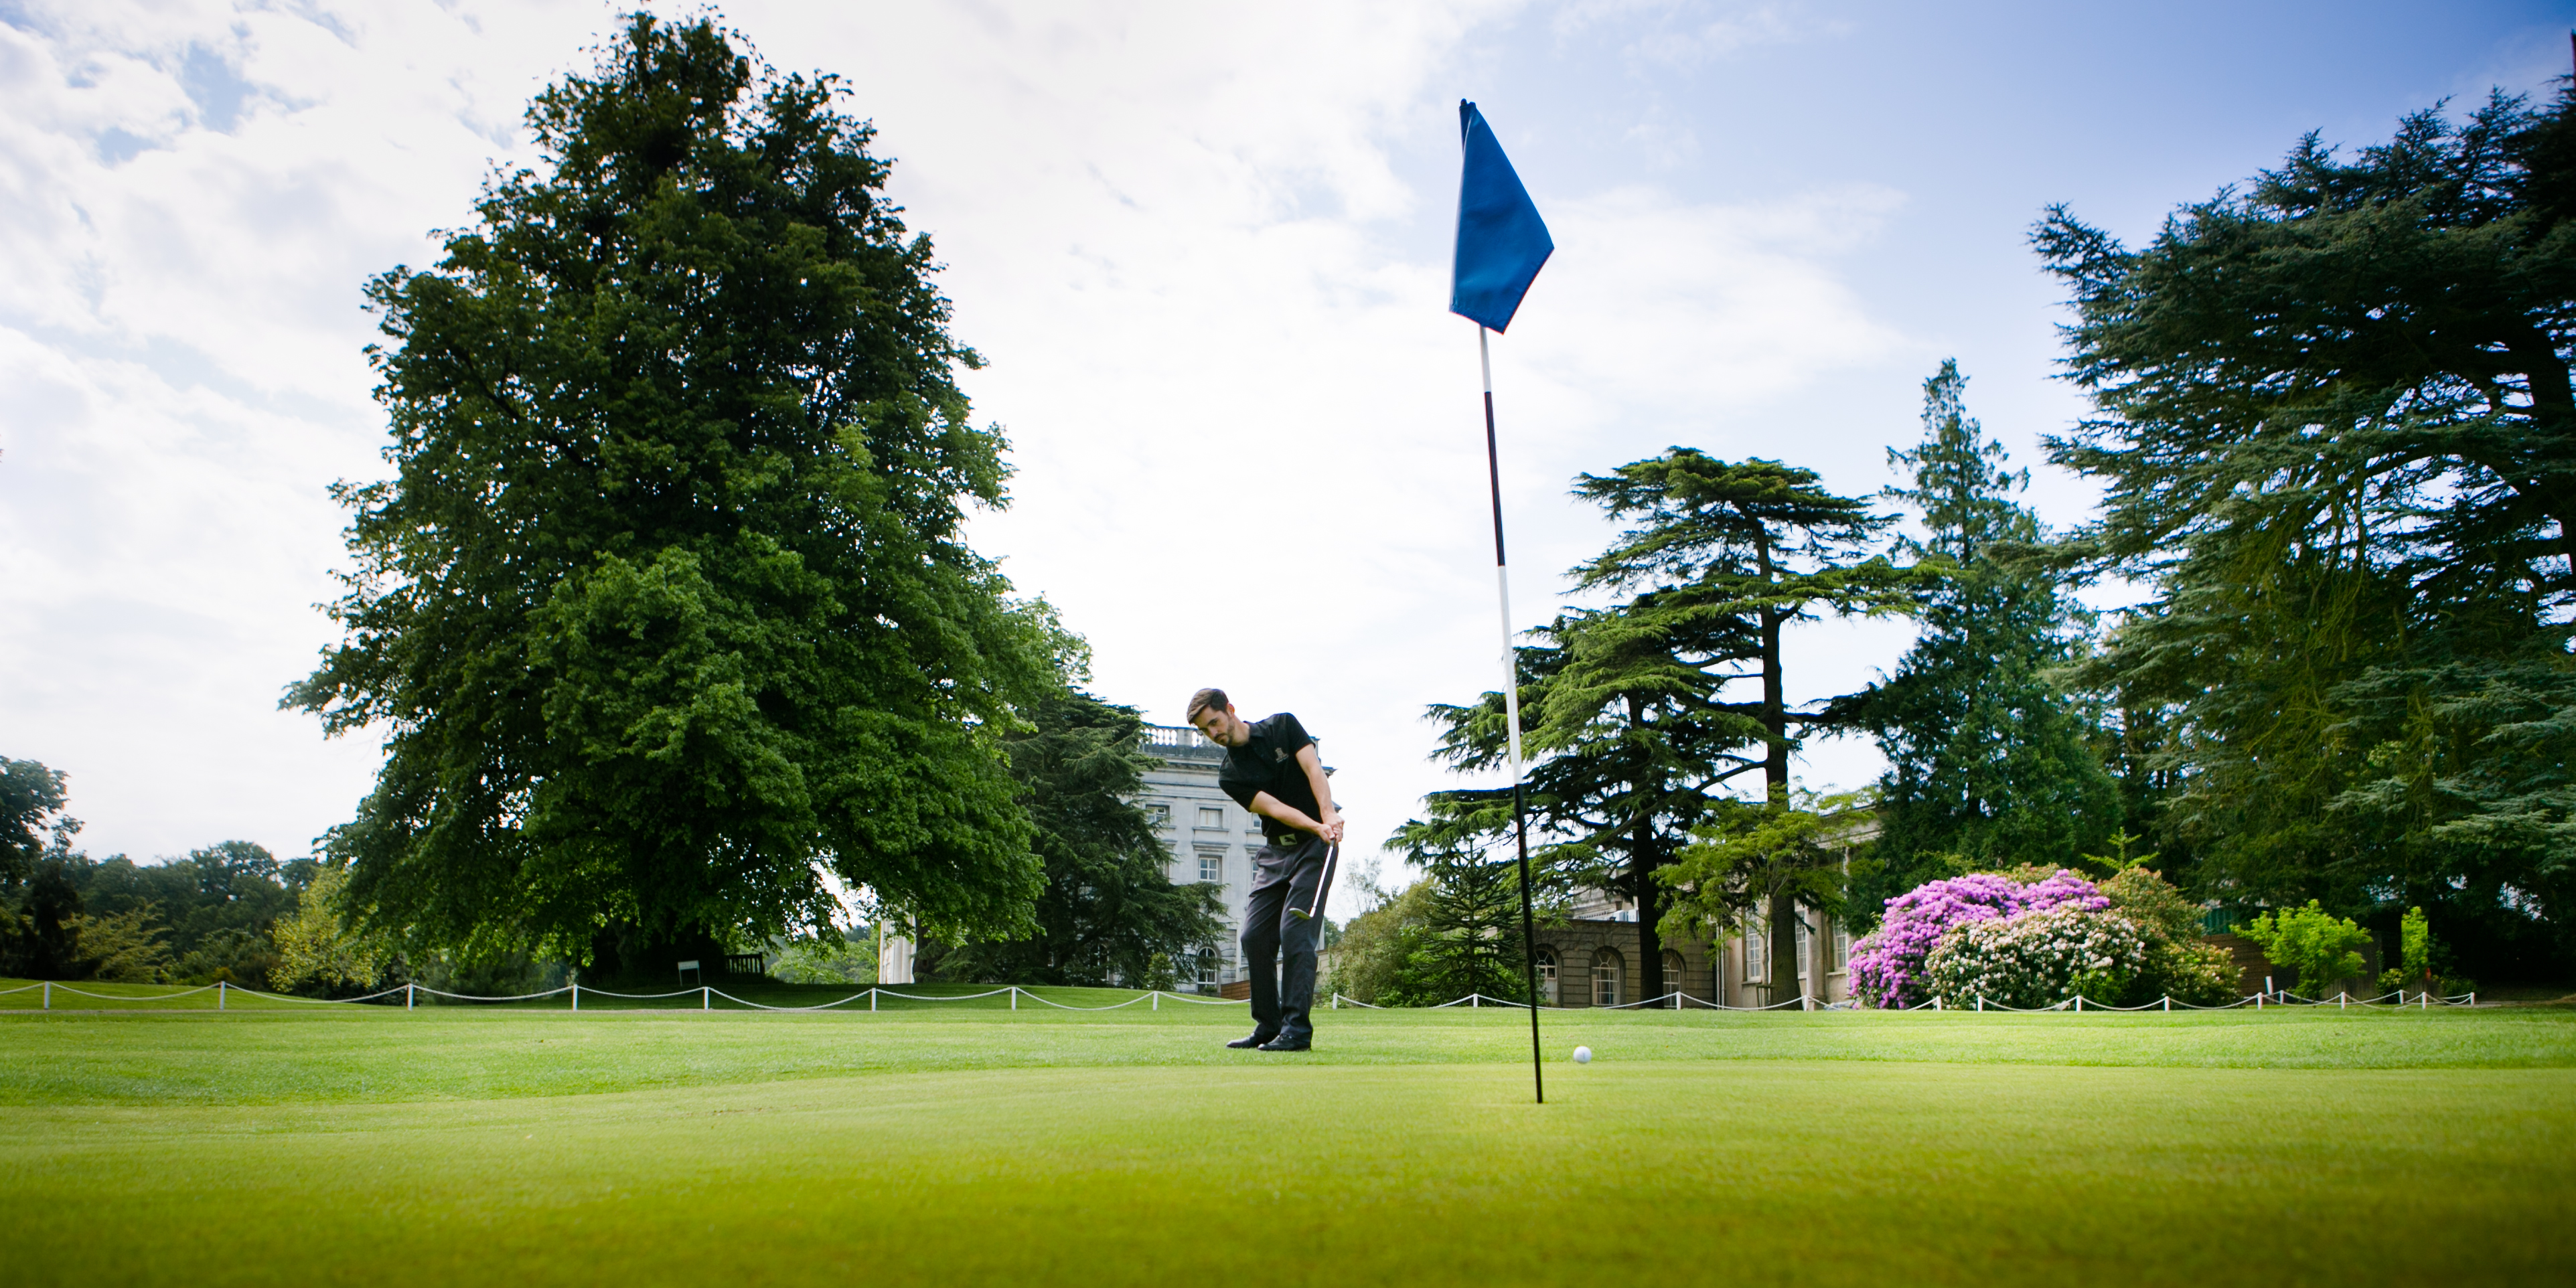 Man putting with flag in hole